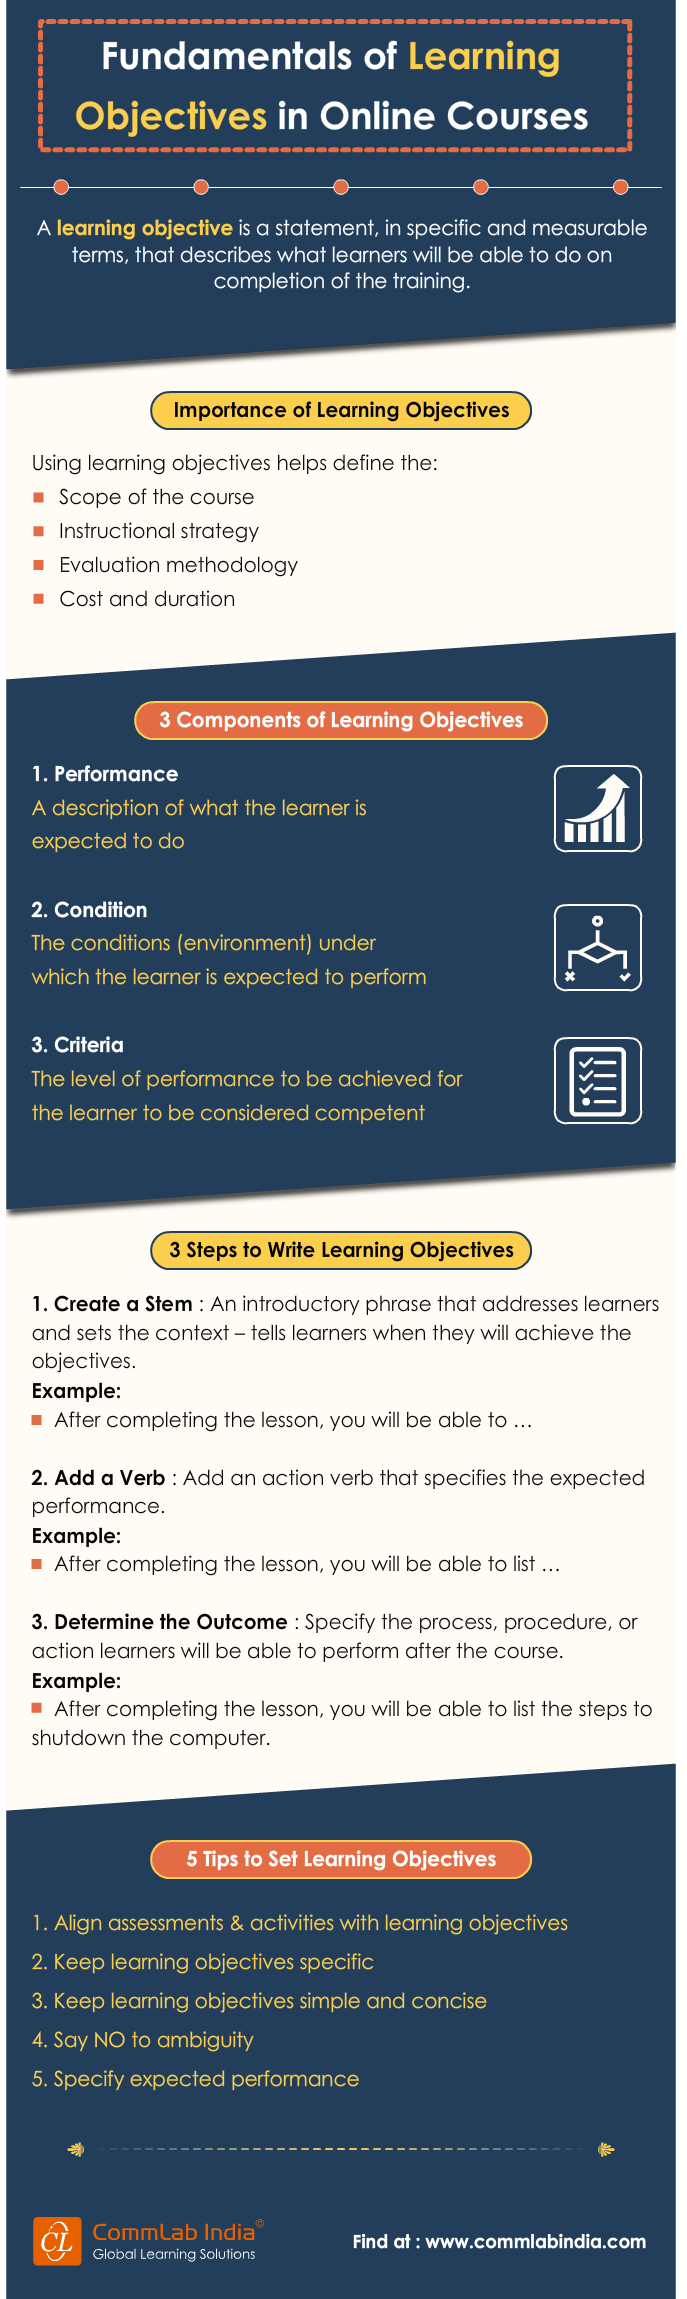 Fundamentals of Learning Objectives in Online Courses [Infographic]